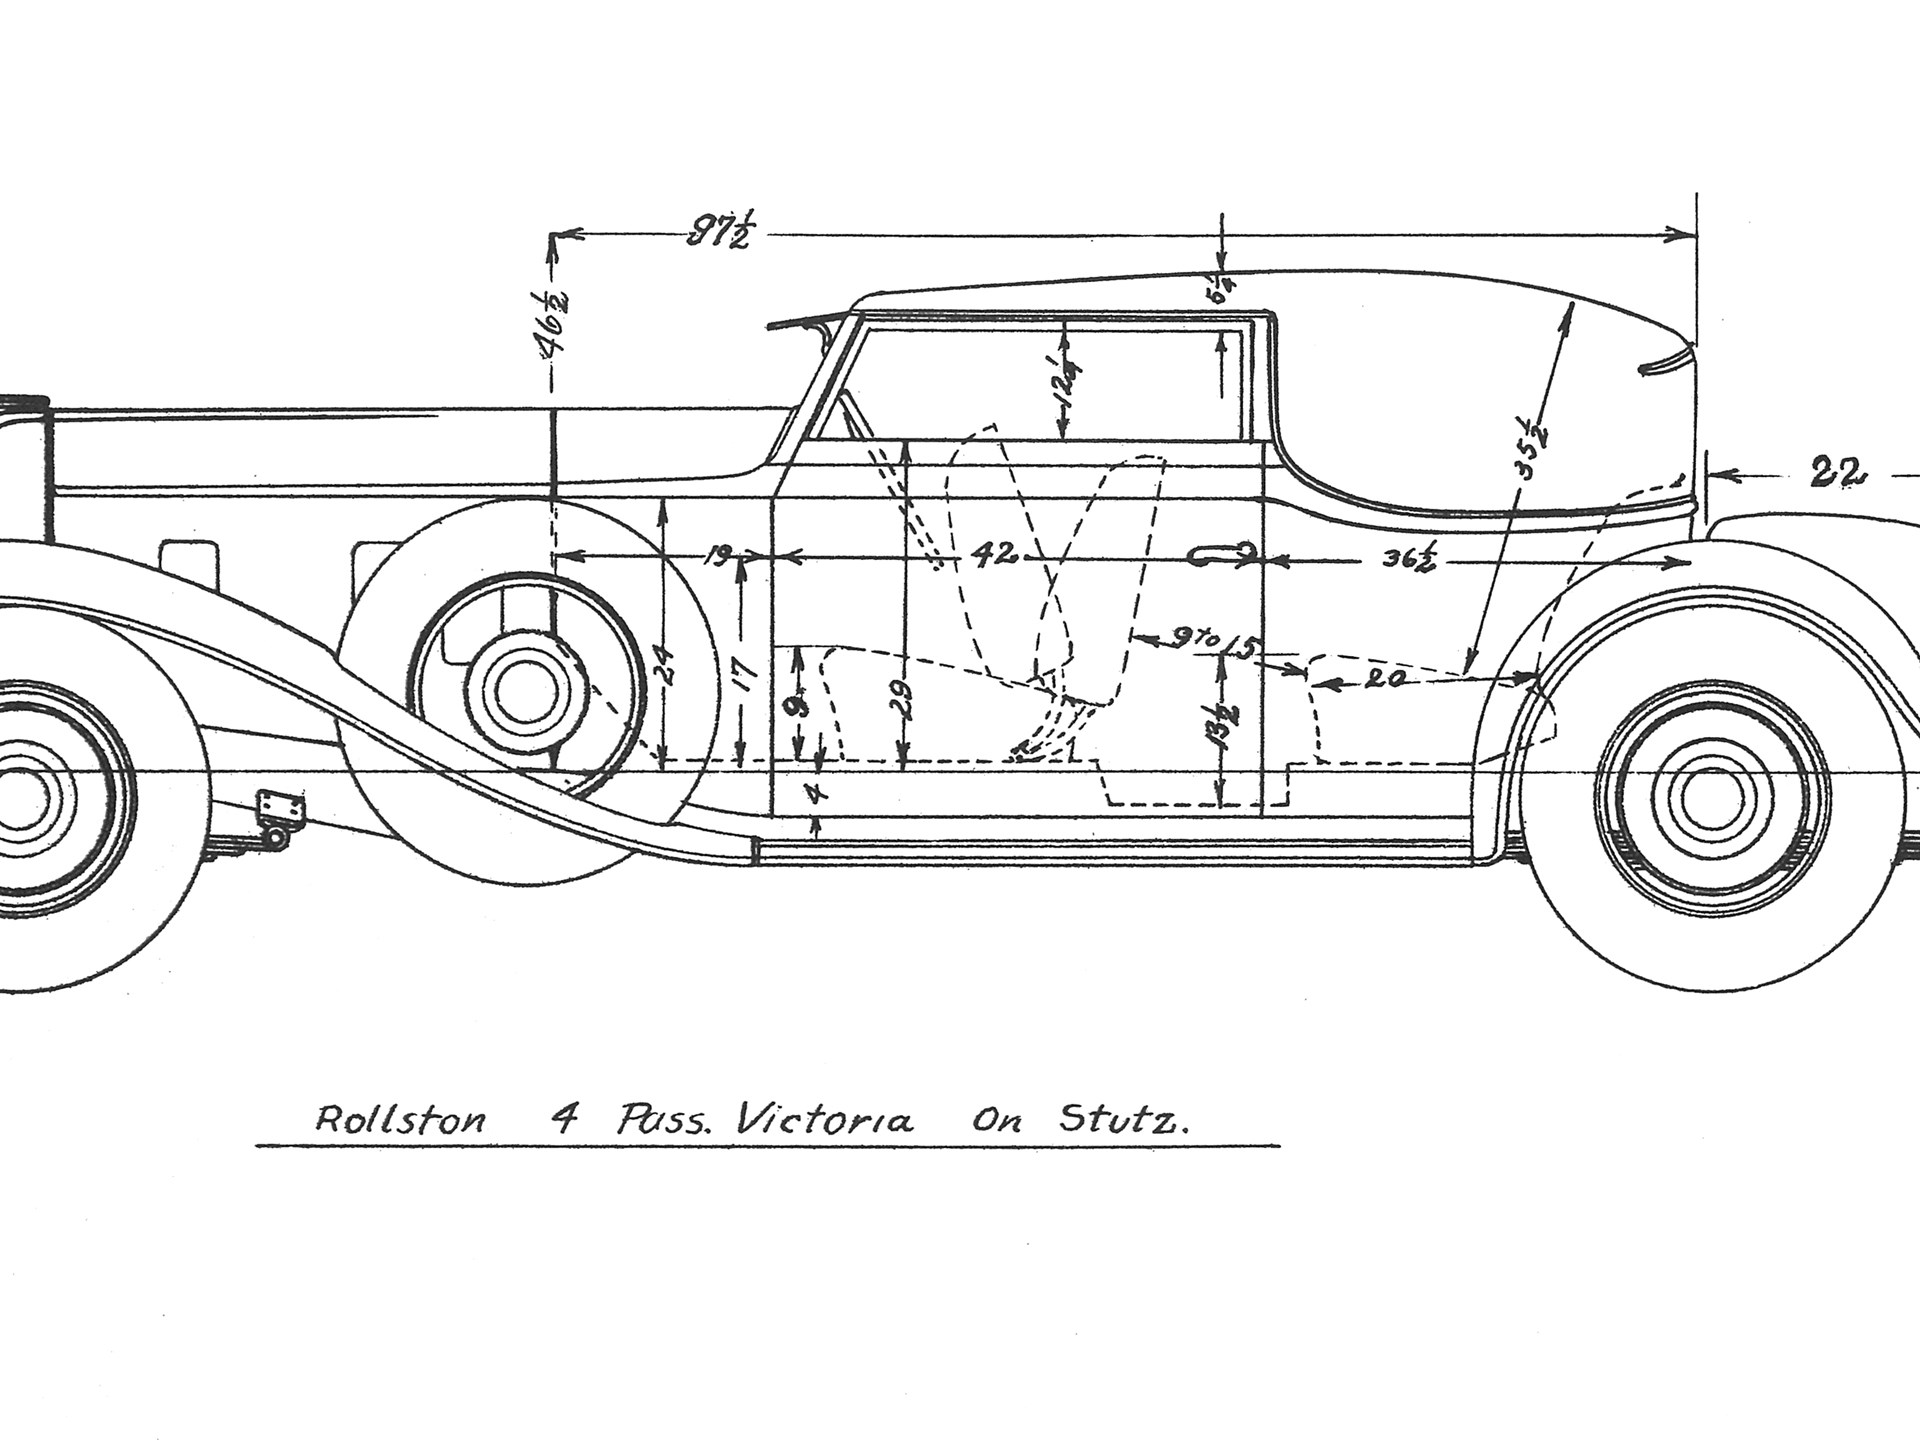 The original design drawing for body style no. 159.